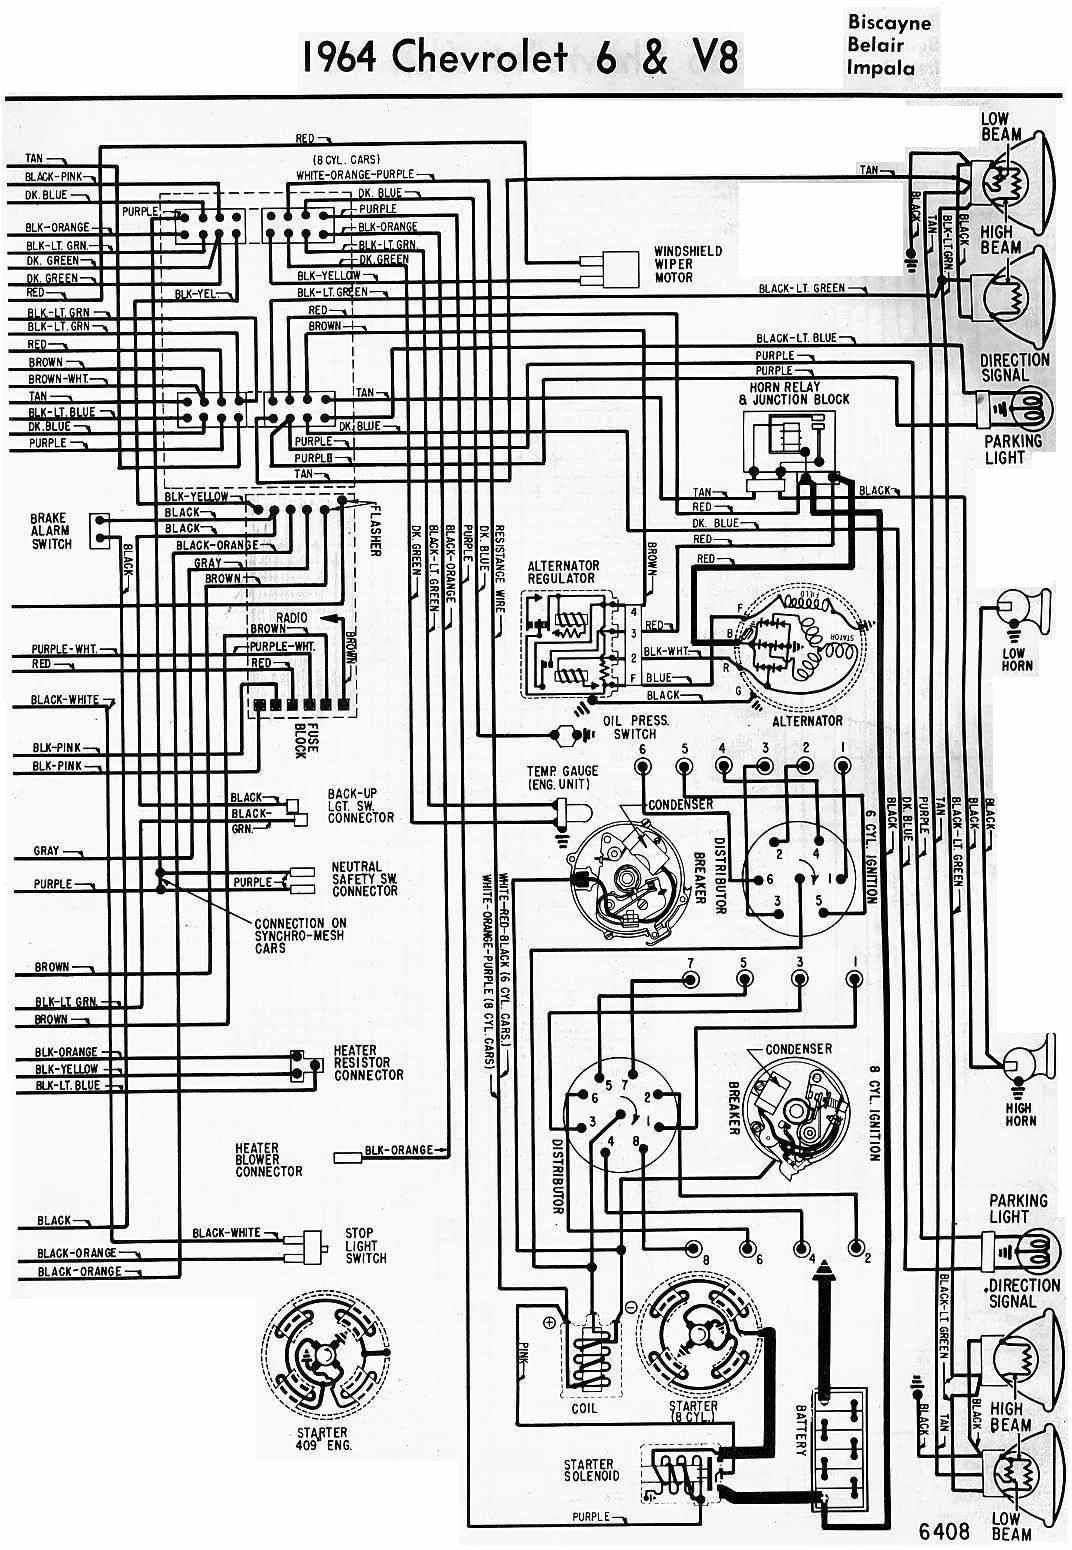 Electrical Wiring Diagram Of 1964 Chevrolet 6 And V8 | All about Wiring Diagrams